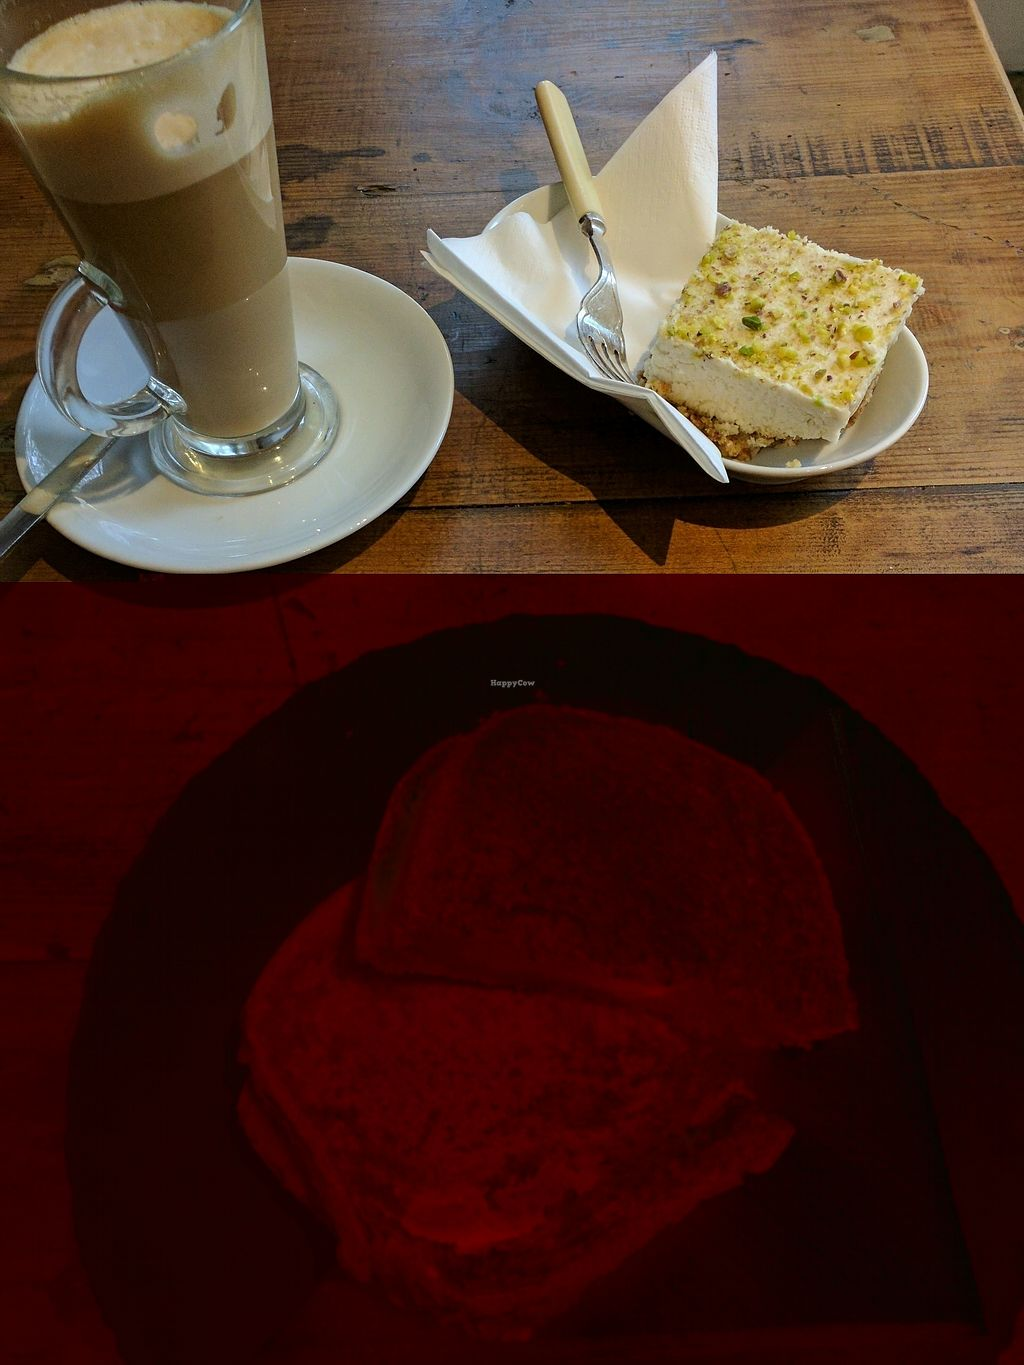 "Photo of Ground Up  by <a href=""/members/profile/JonathanTolan"">JonathanTolan</a> <br/>""cheese"" and tomato toastie and cashew cheesecake. great vegan options! <br/> November 20, 2017  - <a href='/contact/abuse/image/92747/327623'>Report</a>"